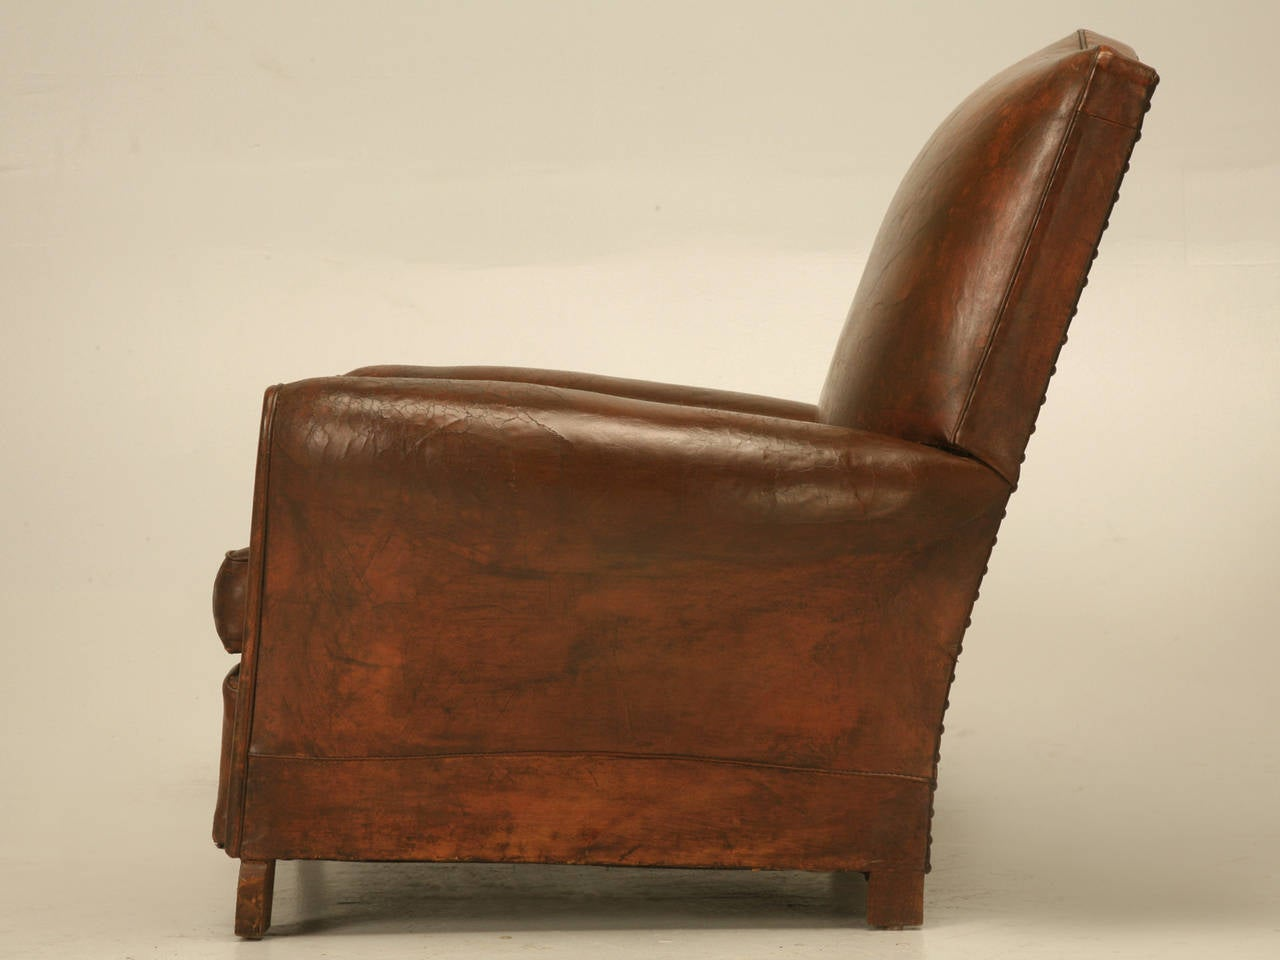 French art deco leather club chair circa 1930s at 1stdibs for Examples of art deco furniture